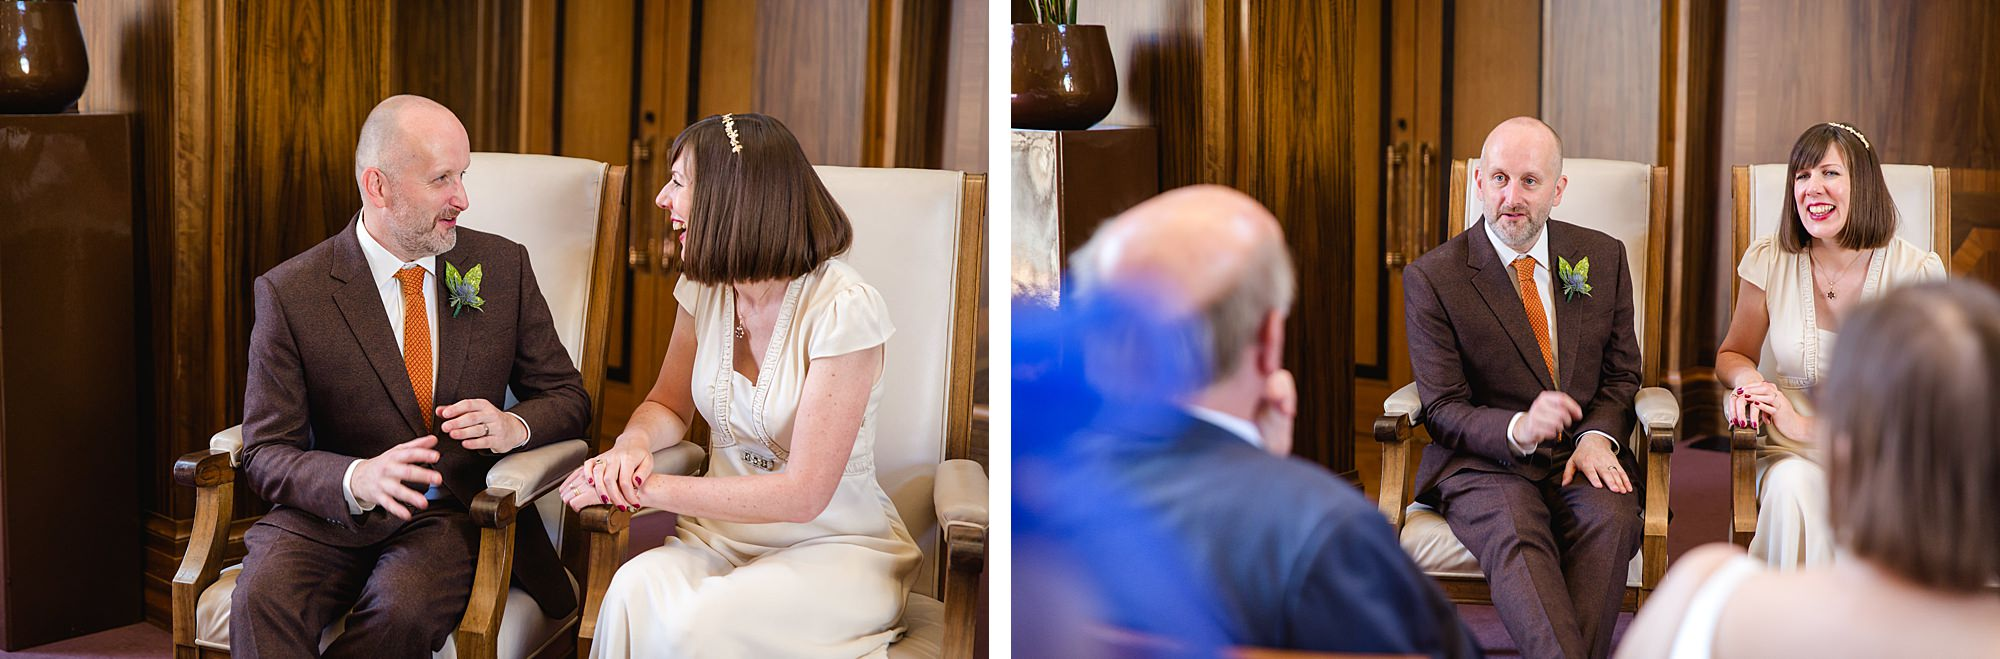 Clapton Country Club wedding photography couple chat together